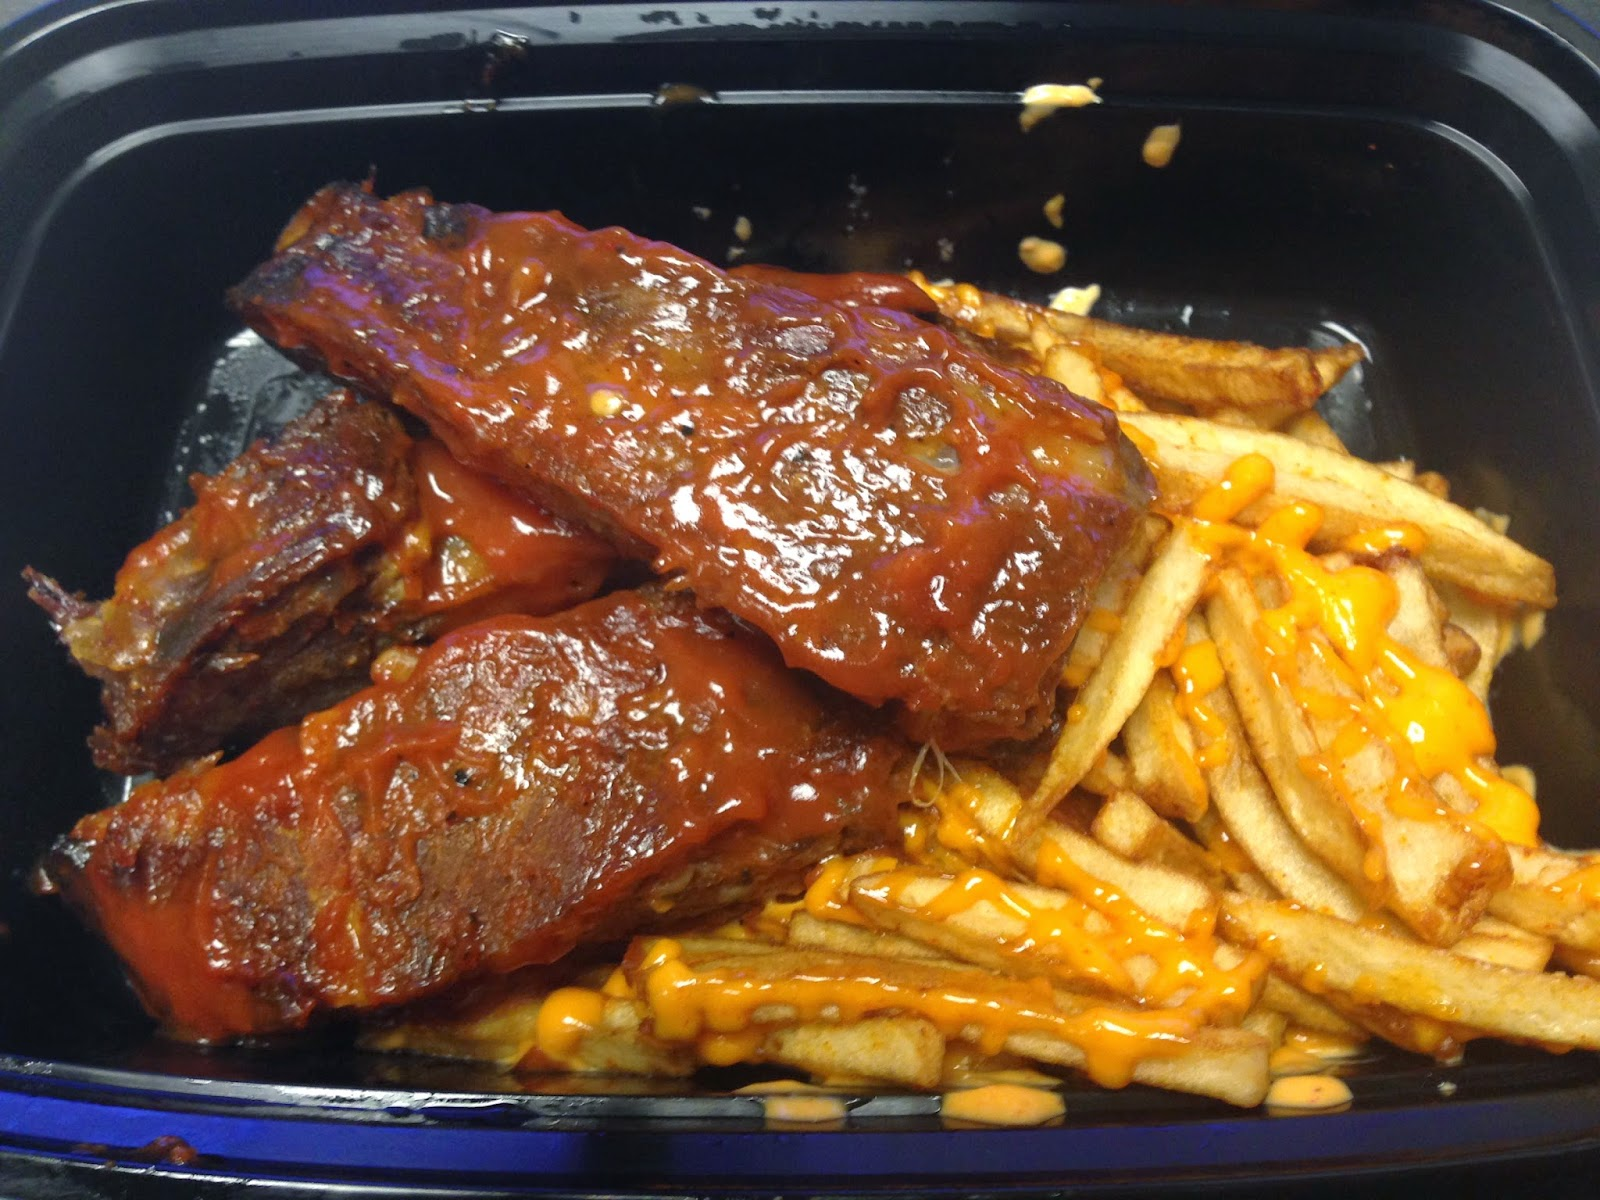 Copper Chefs Food Truck Habanero Pork Ribs